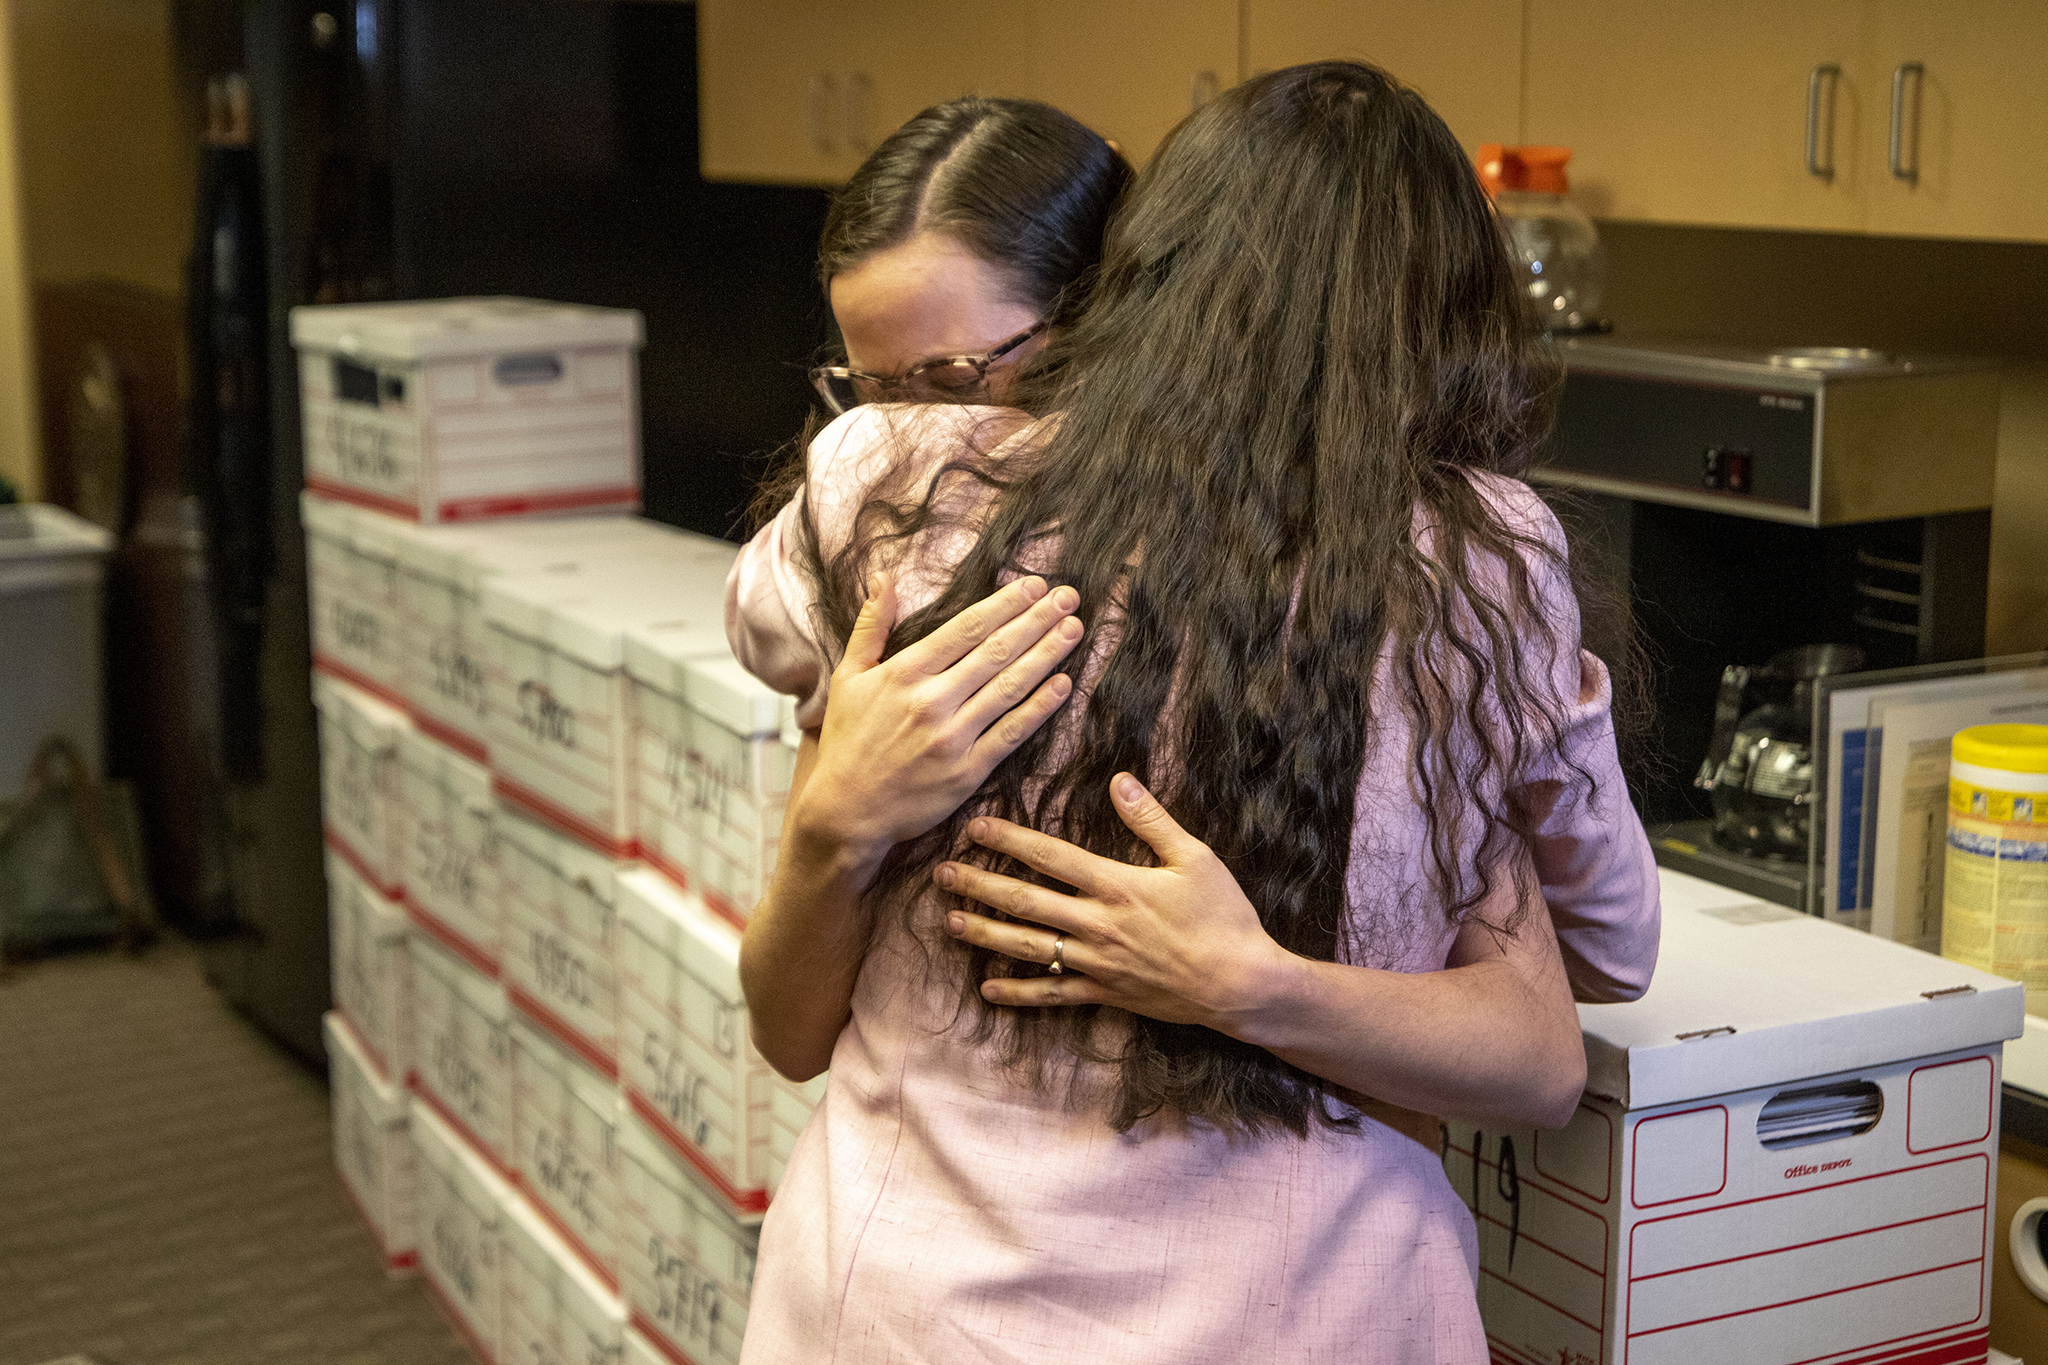 Erin Behrens and Giuliana Day embrace in tears after they helped deliver thousands of signed petitions to the Colorado Secretary of State's office, initiating a ballot measure process that could ban abortions after 22 weeks of pregnancy. March 4, 2020. (Kevin J. Beaty/Denverite)